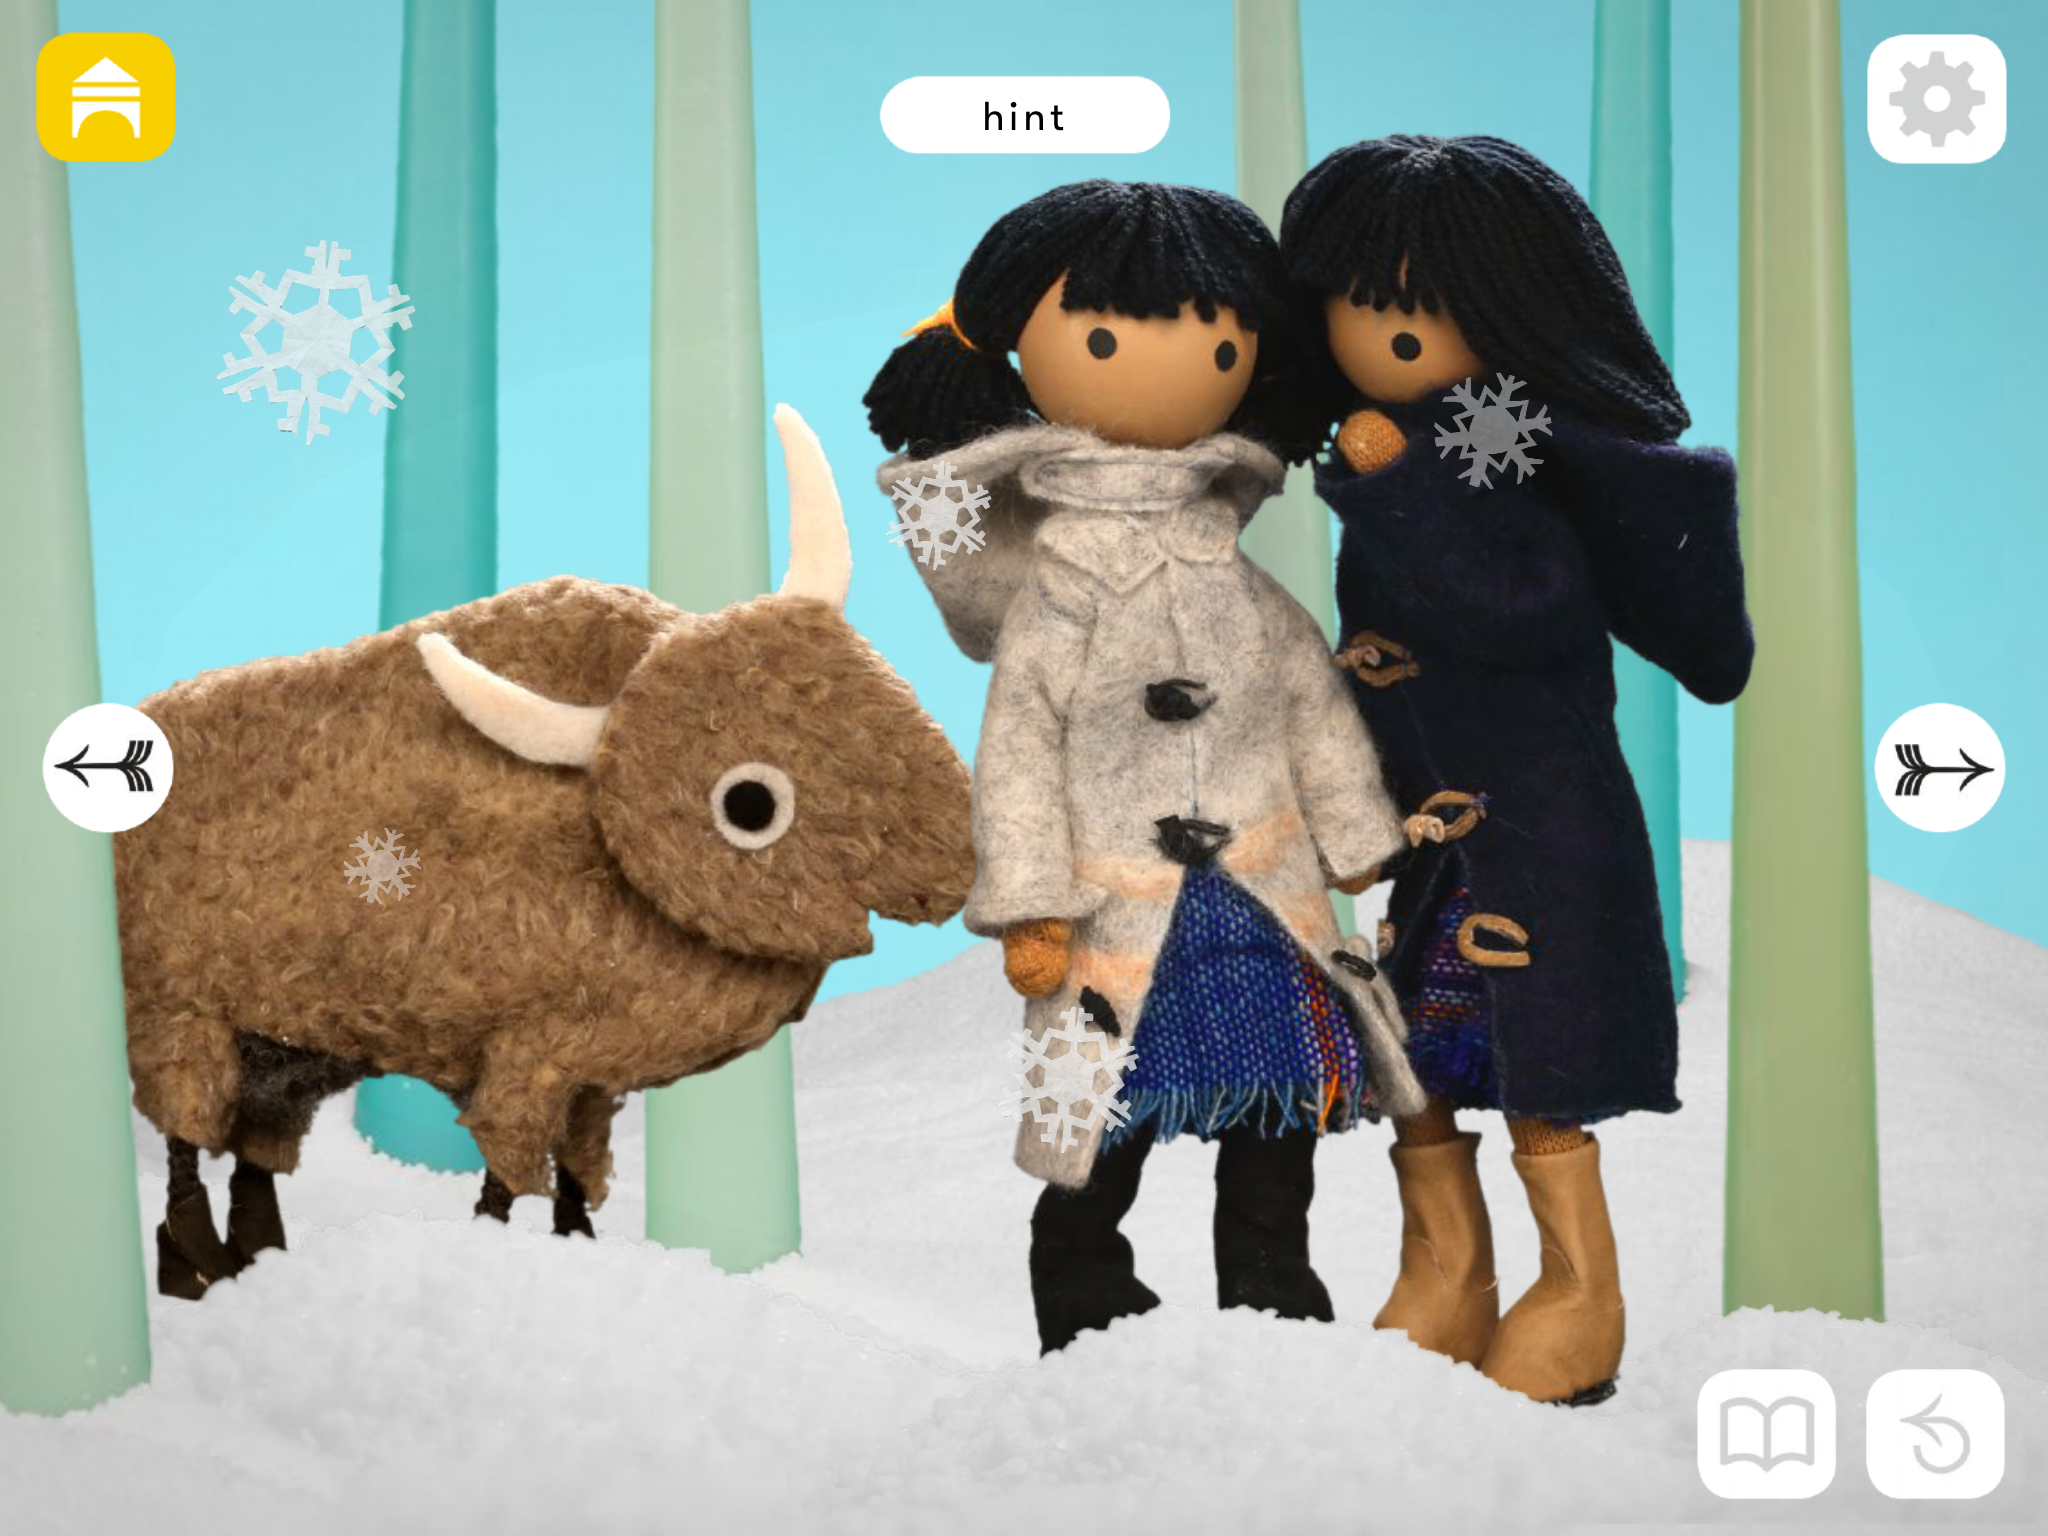 It's Tulip's birthday. Snowy & Chinook are wondering what to get their buffalo friend. Let's go ask our other animal friends.